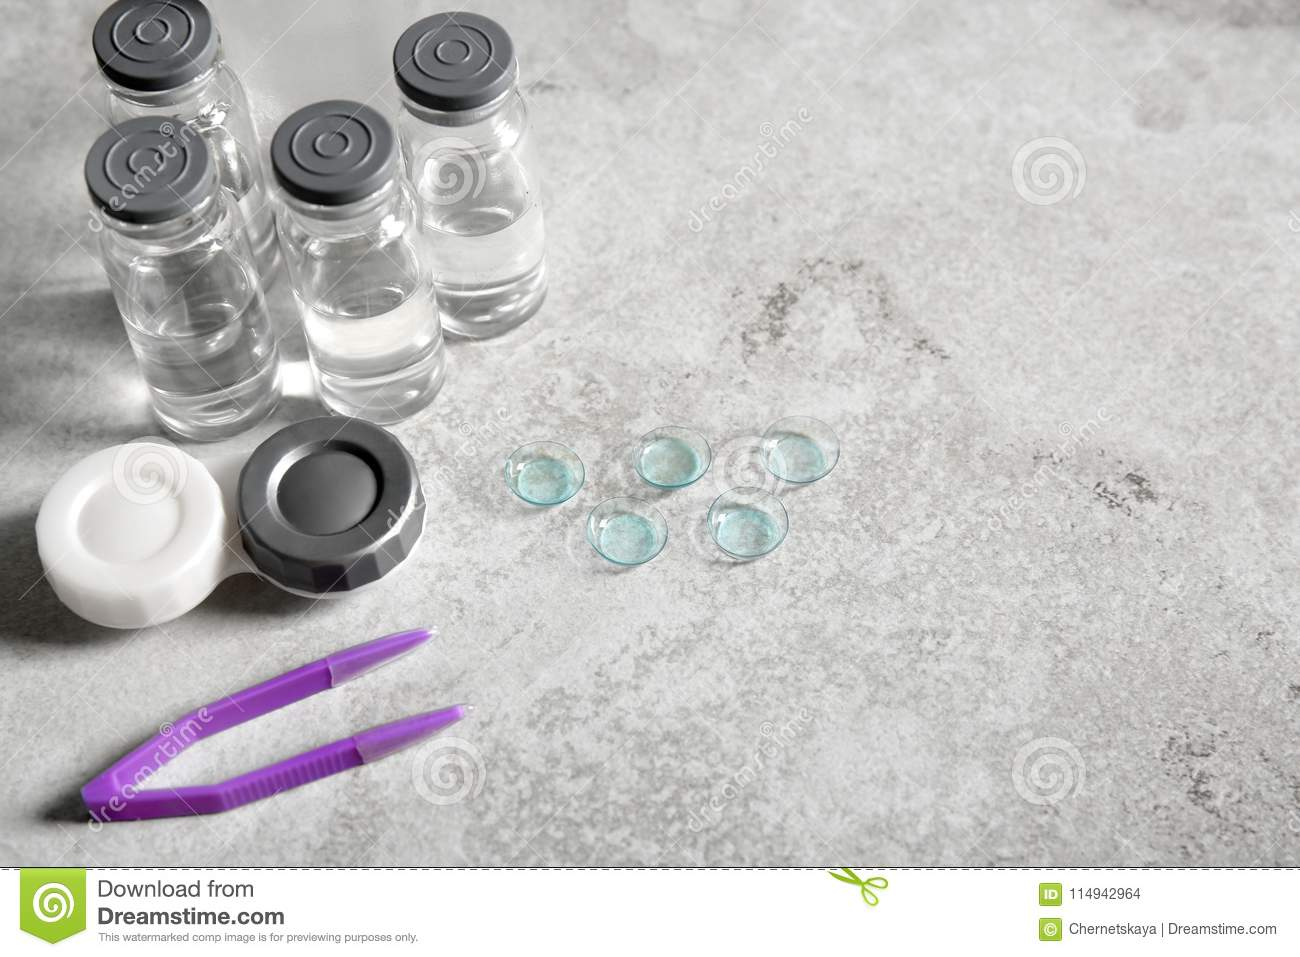 53ac4d8eeb7 Contact Lenses And Accessories Stock Photo - Image of health ...